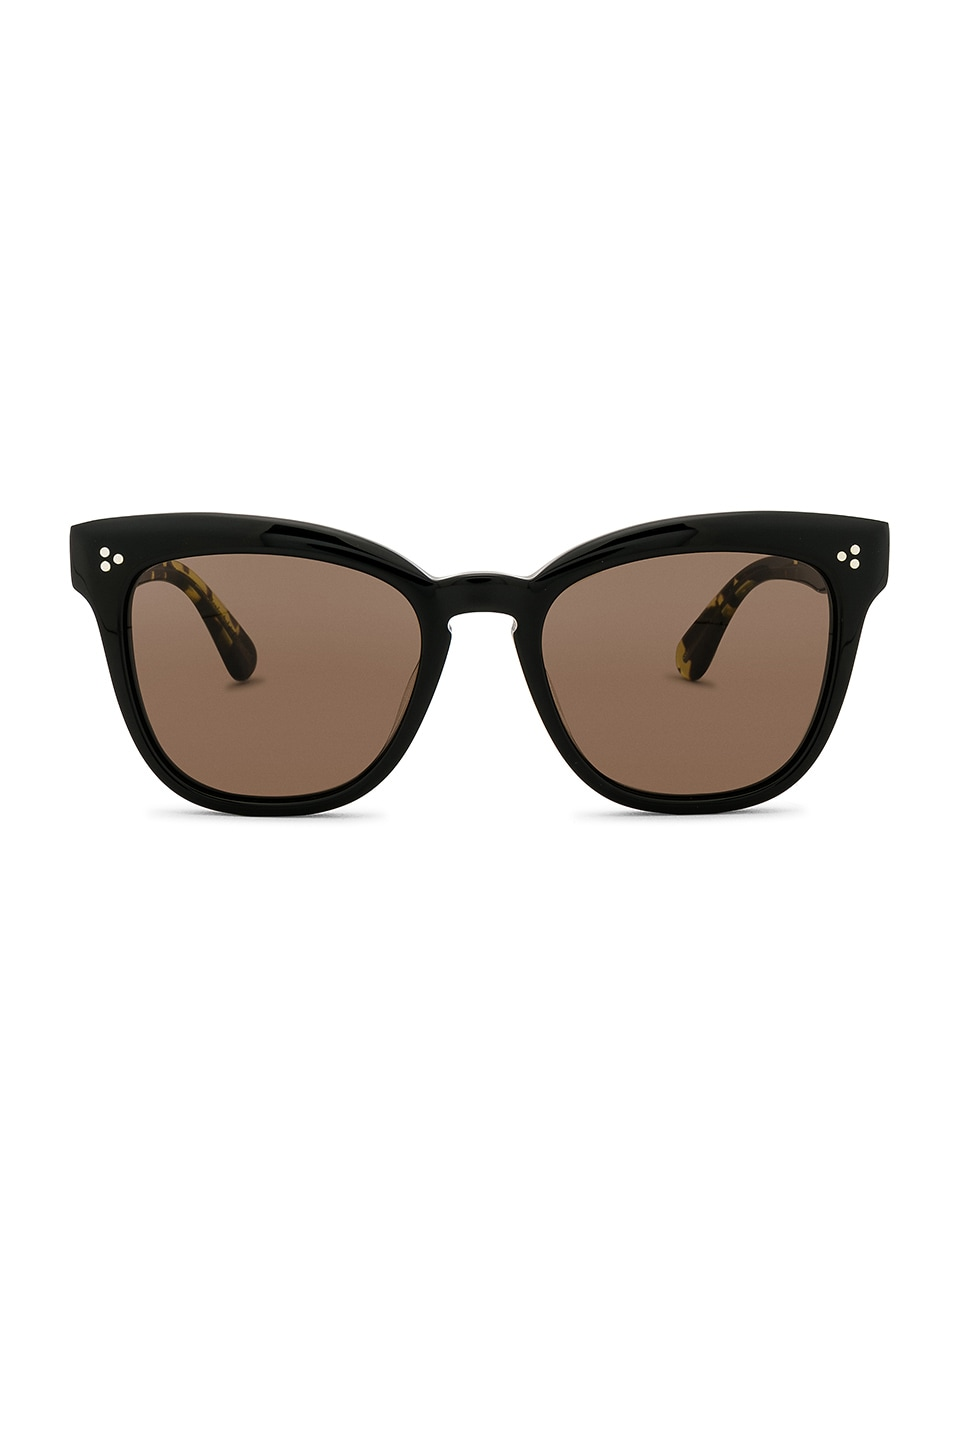 Oliver Peoples Marianela in Black & G-15